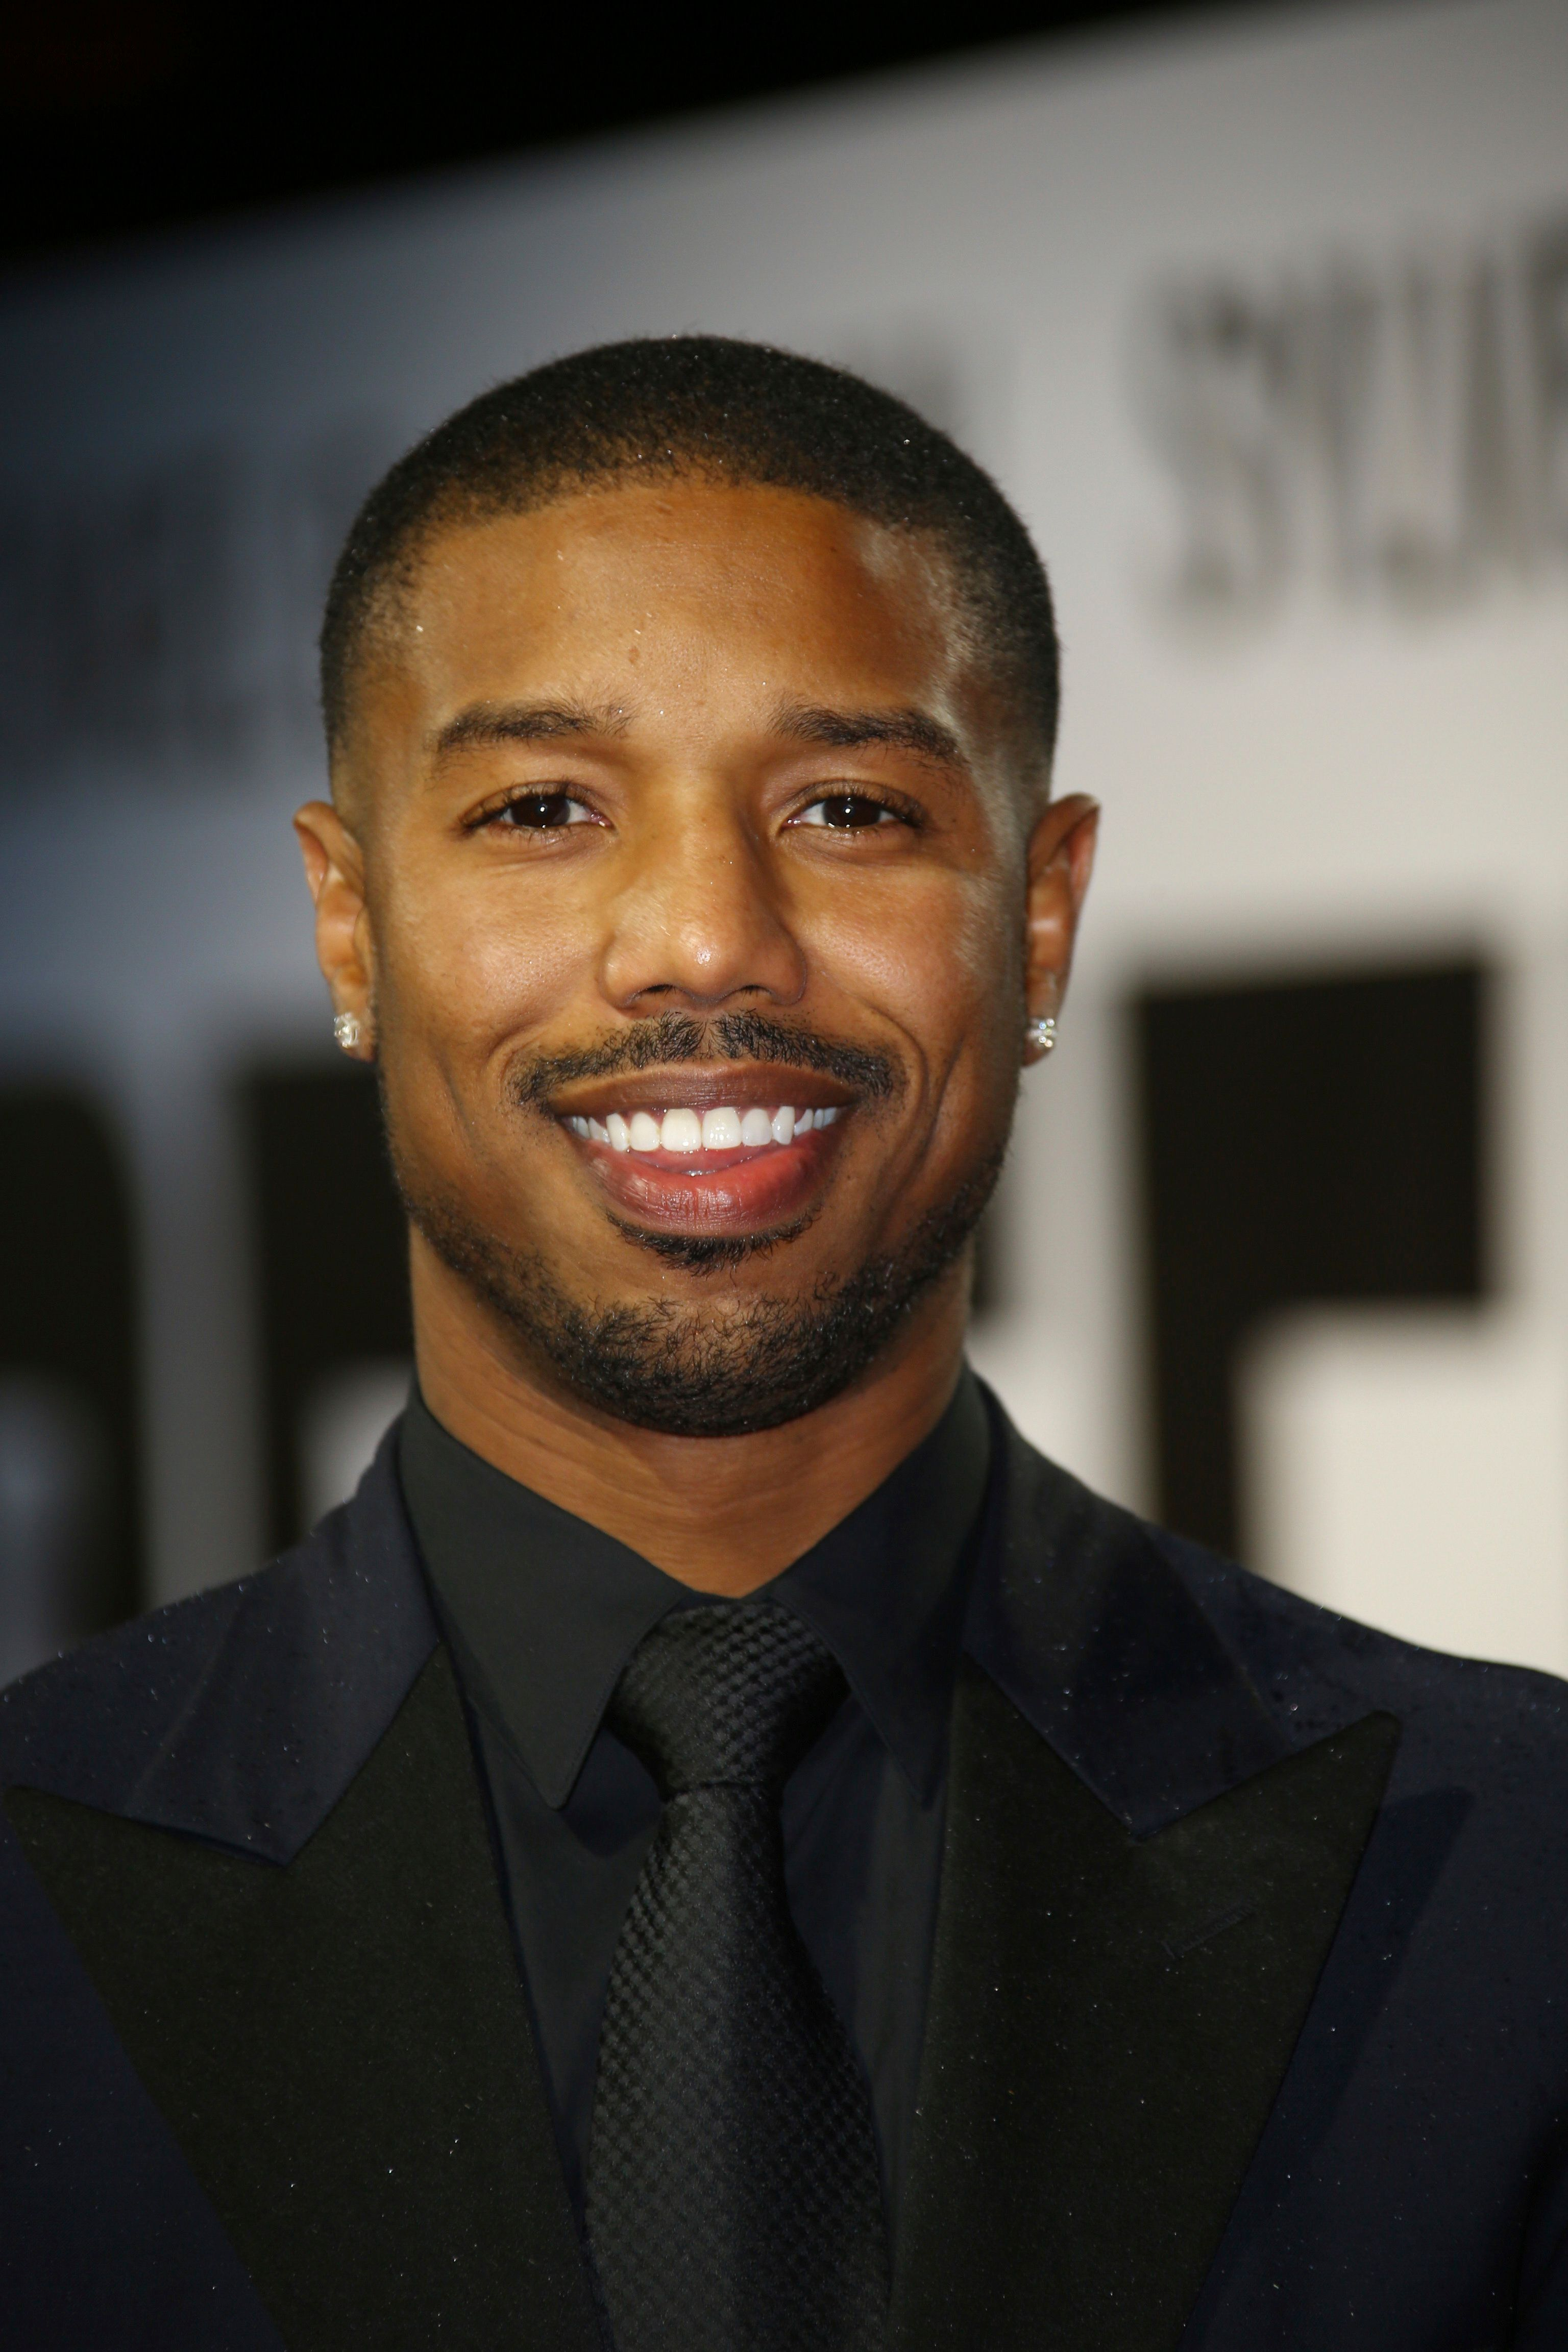 Michael B. Jordan Meets Fan Who Tweeted A Photoshopped Picture Of Them